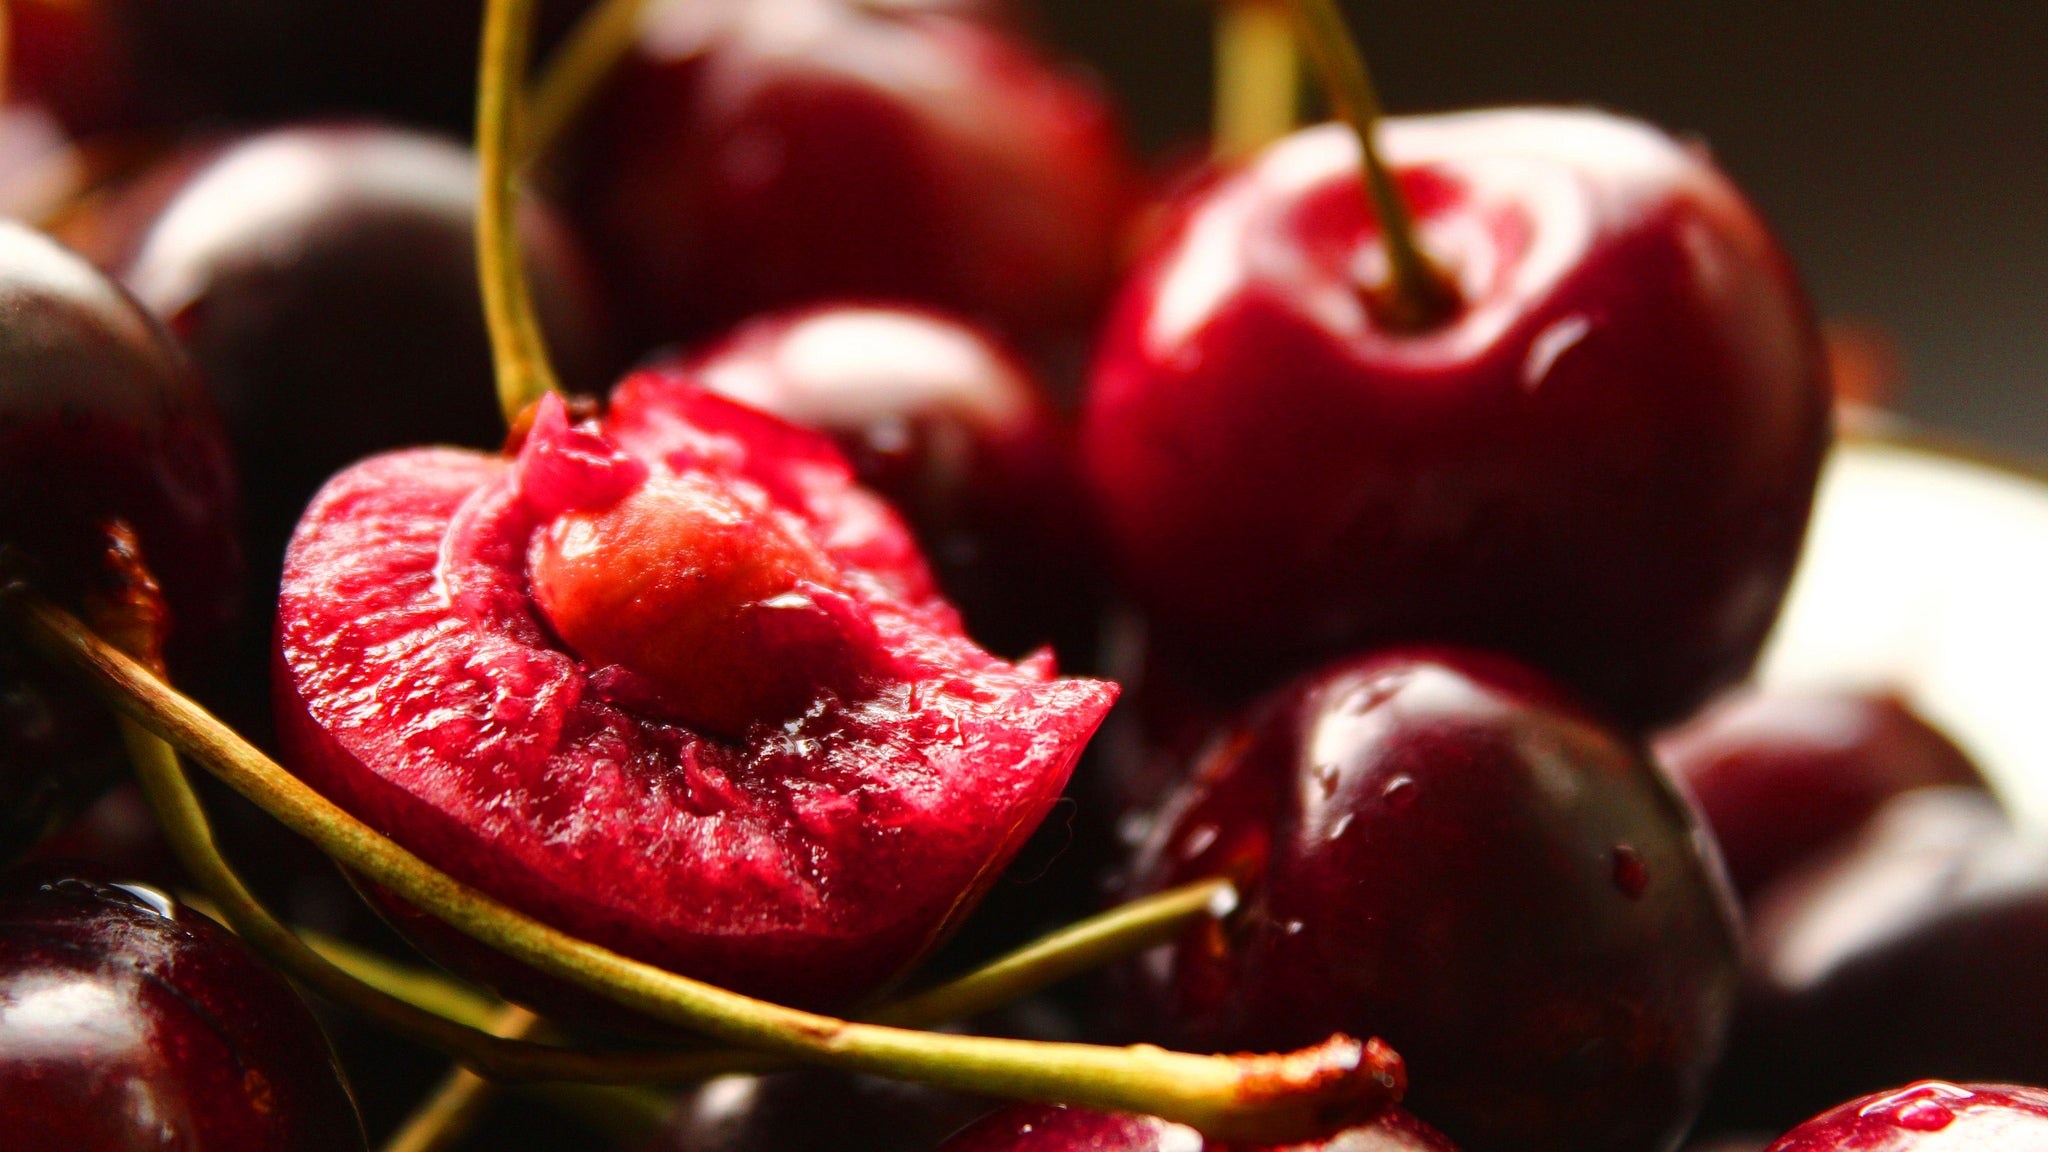 Use Discarded Cherry Pits To Flavour Whipped Cream